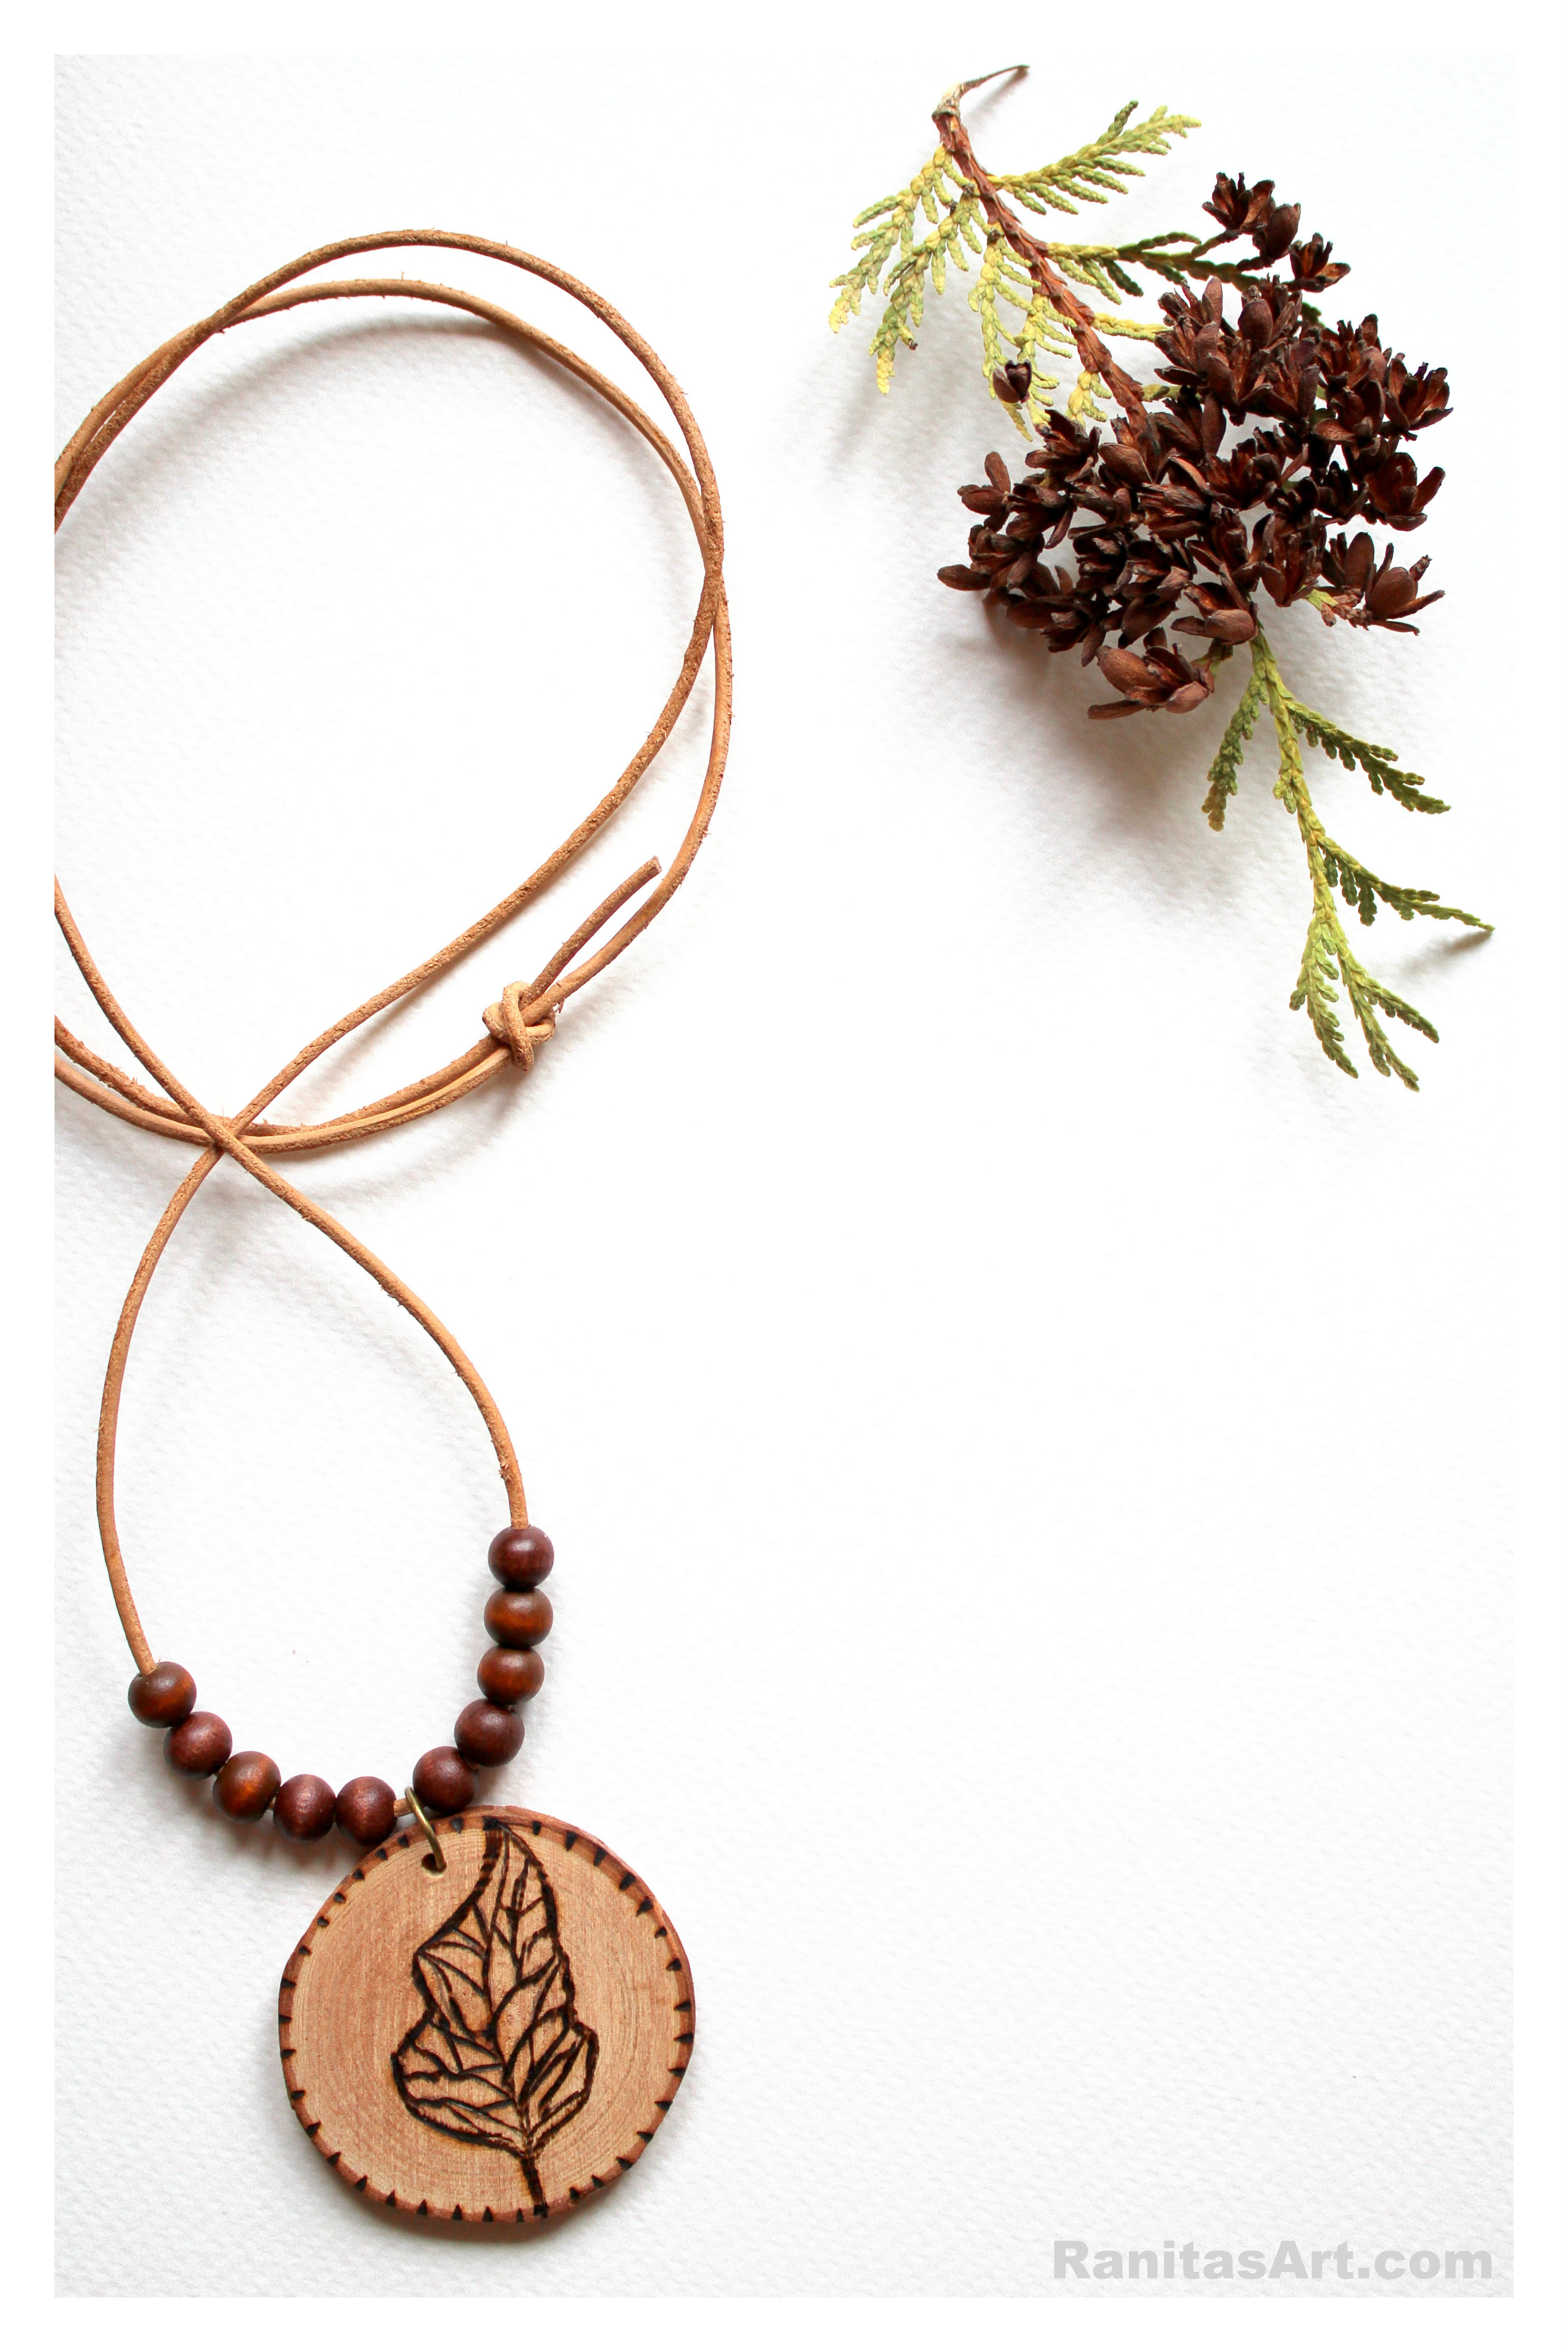 woodburning leaf necklace